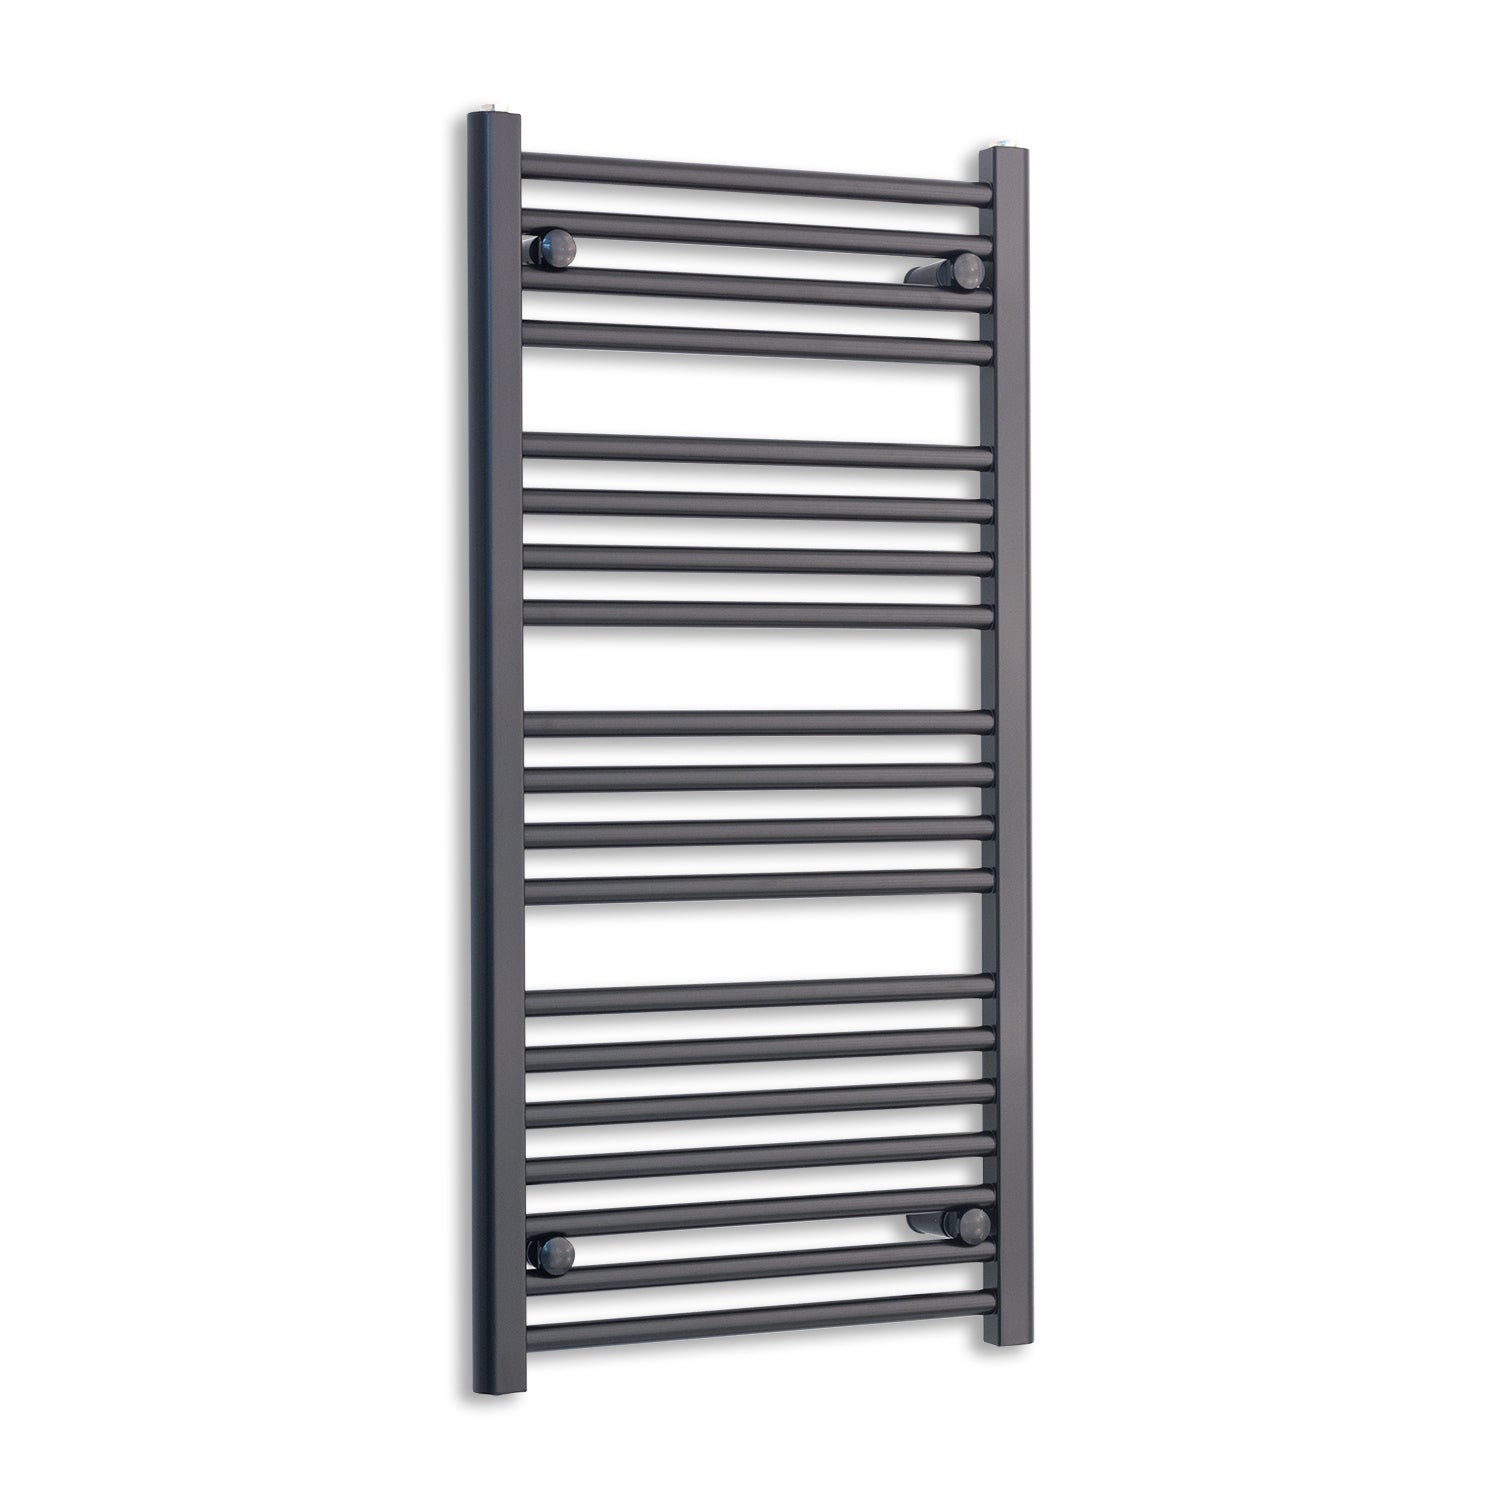 500mm Wide 1000mm High Flat Black Heated Towel Rail Radiator,Towel Rail Only